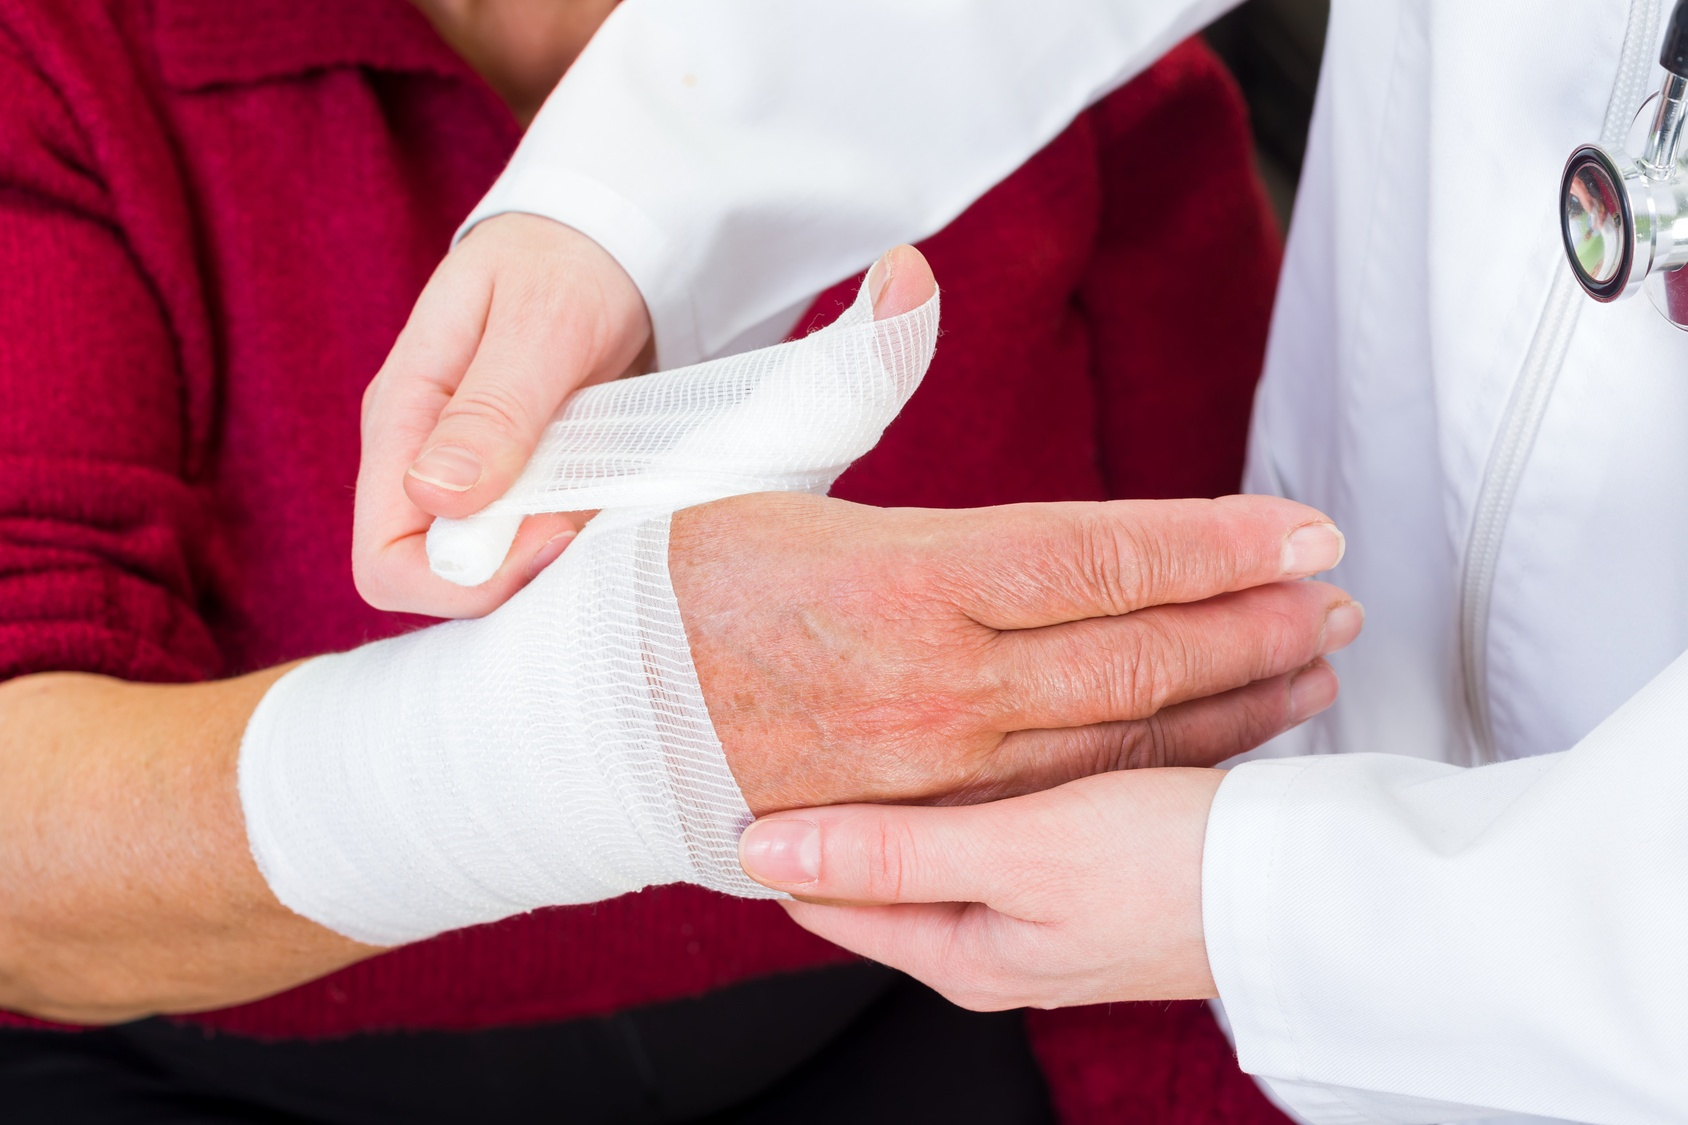 The elderly are at an increased risk of harm from everyday accidents. Even a minor slip and fall that a young person could survive unharmed may cause severe injuries to an older person.